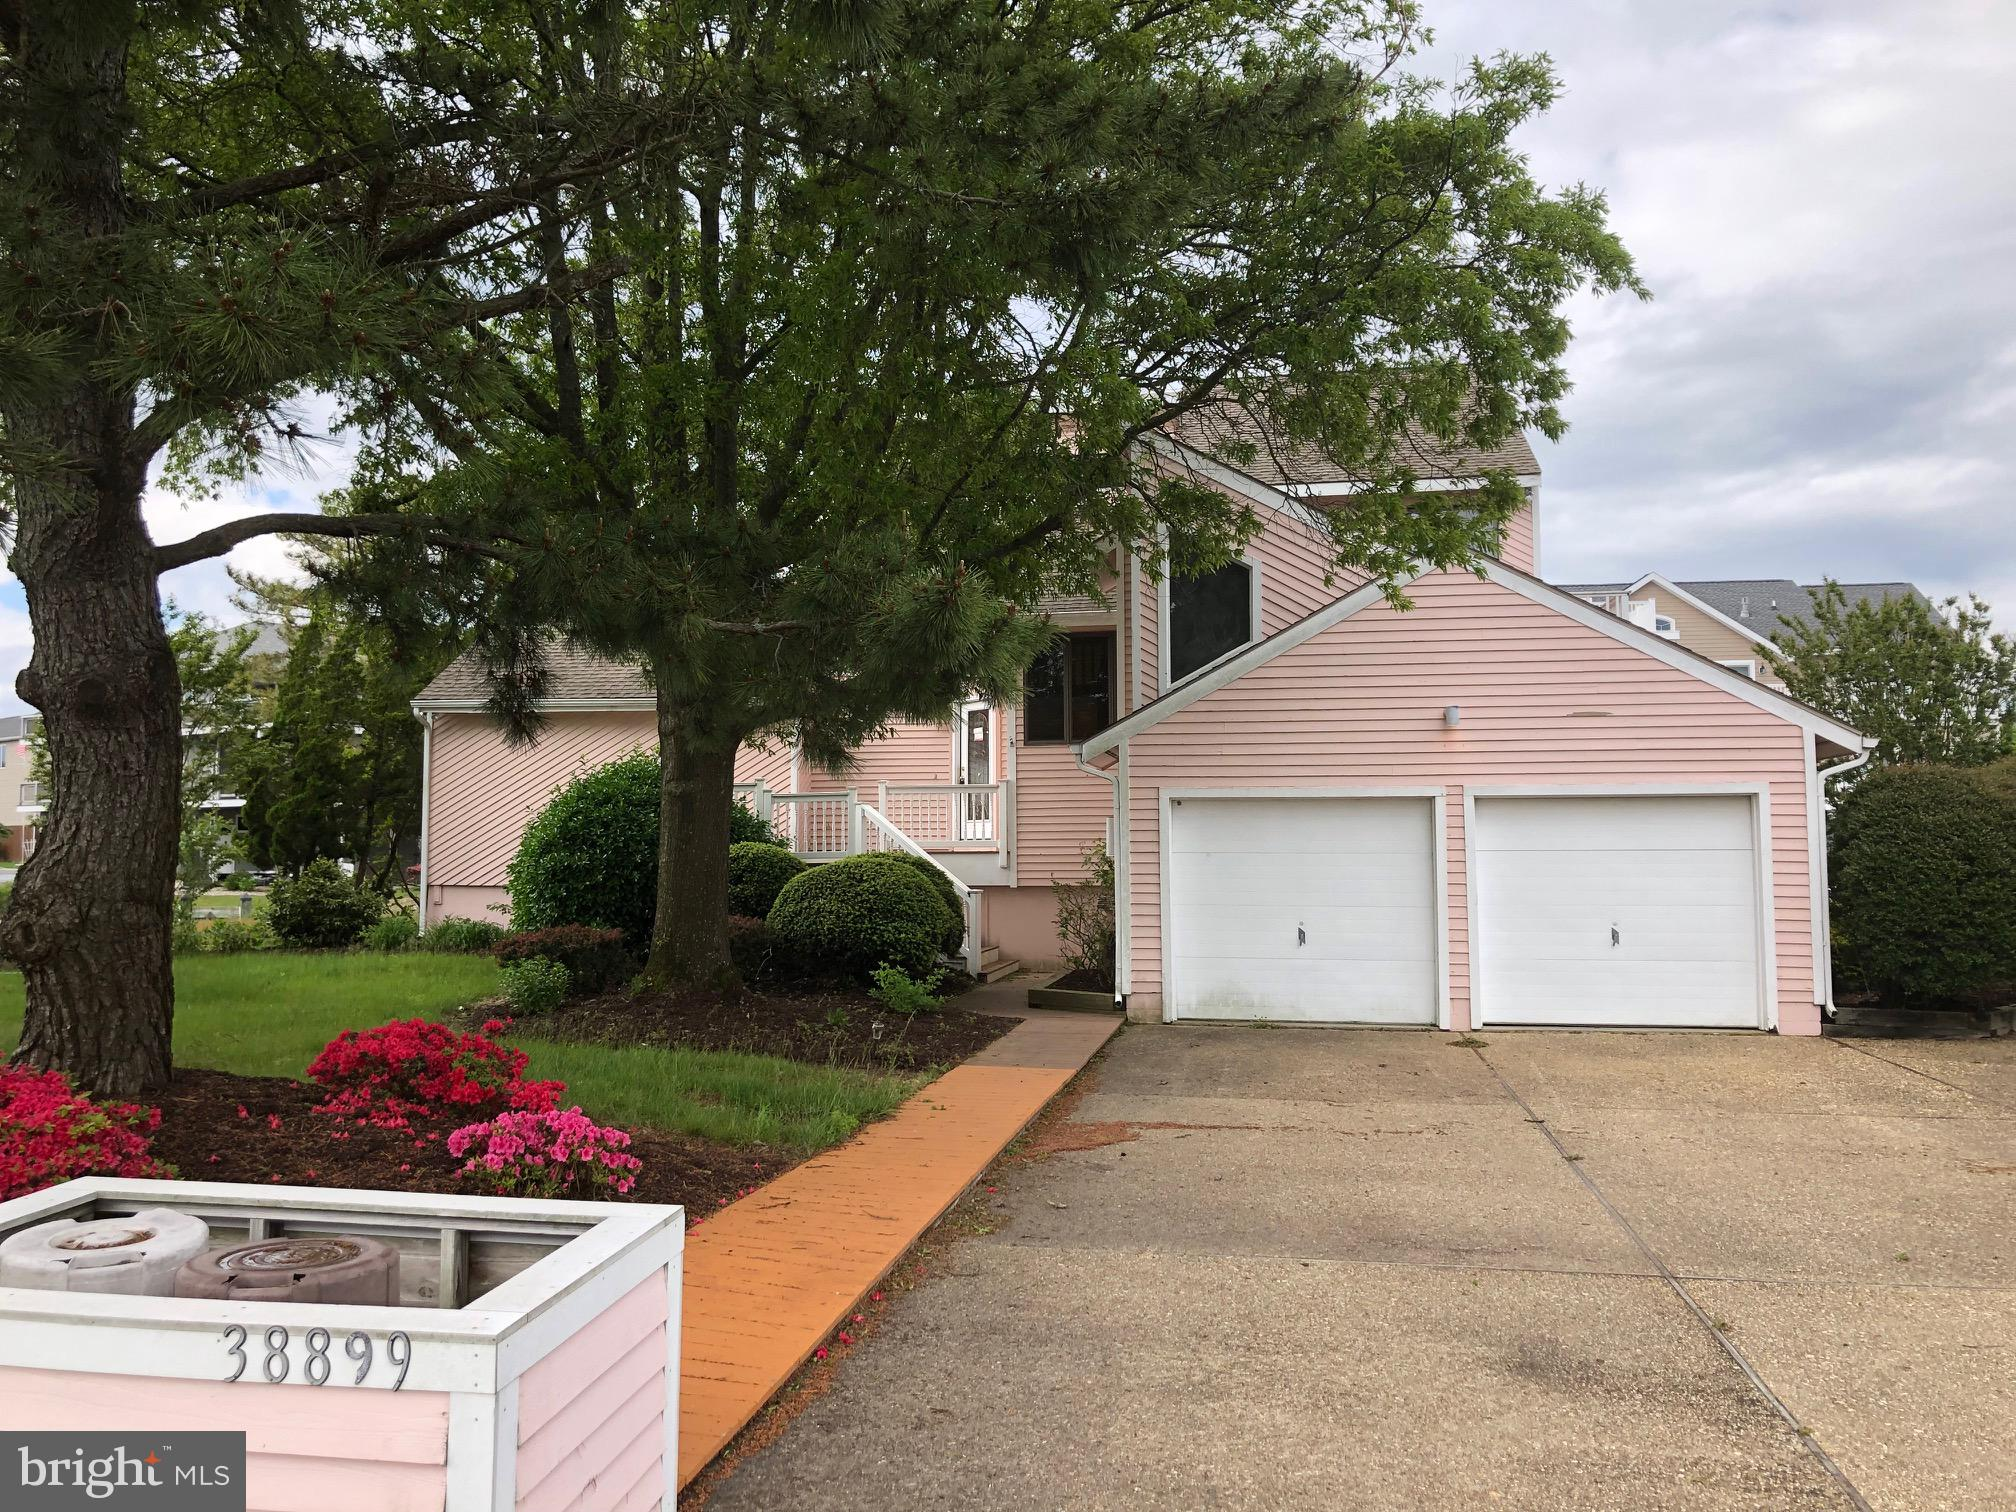 38899 COVE COURT, OCEAN VIEW, DE 19970